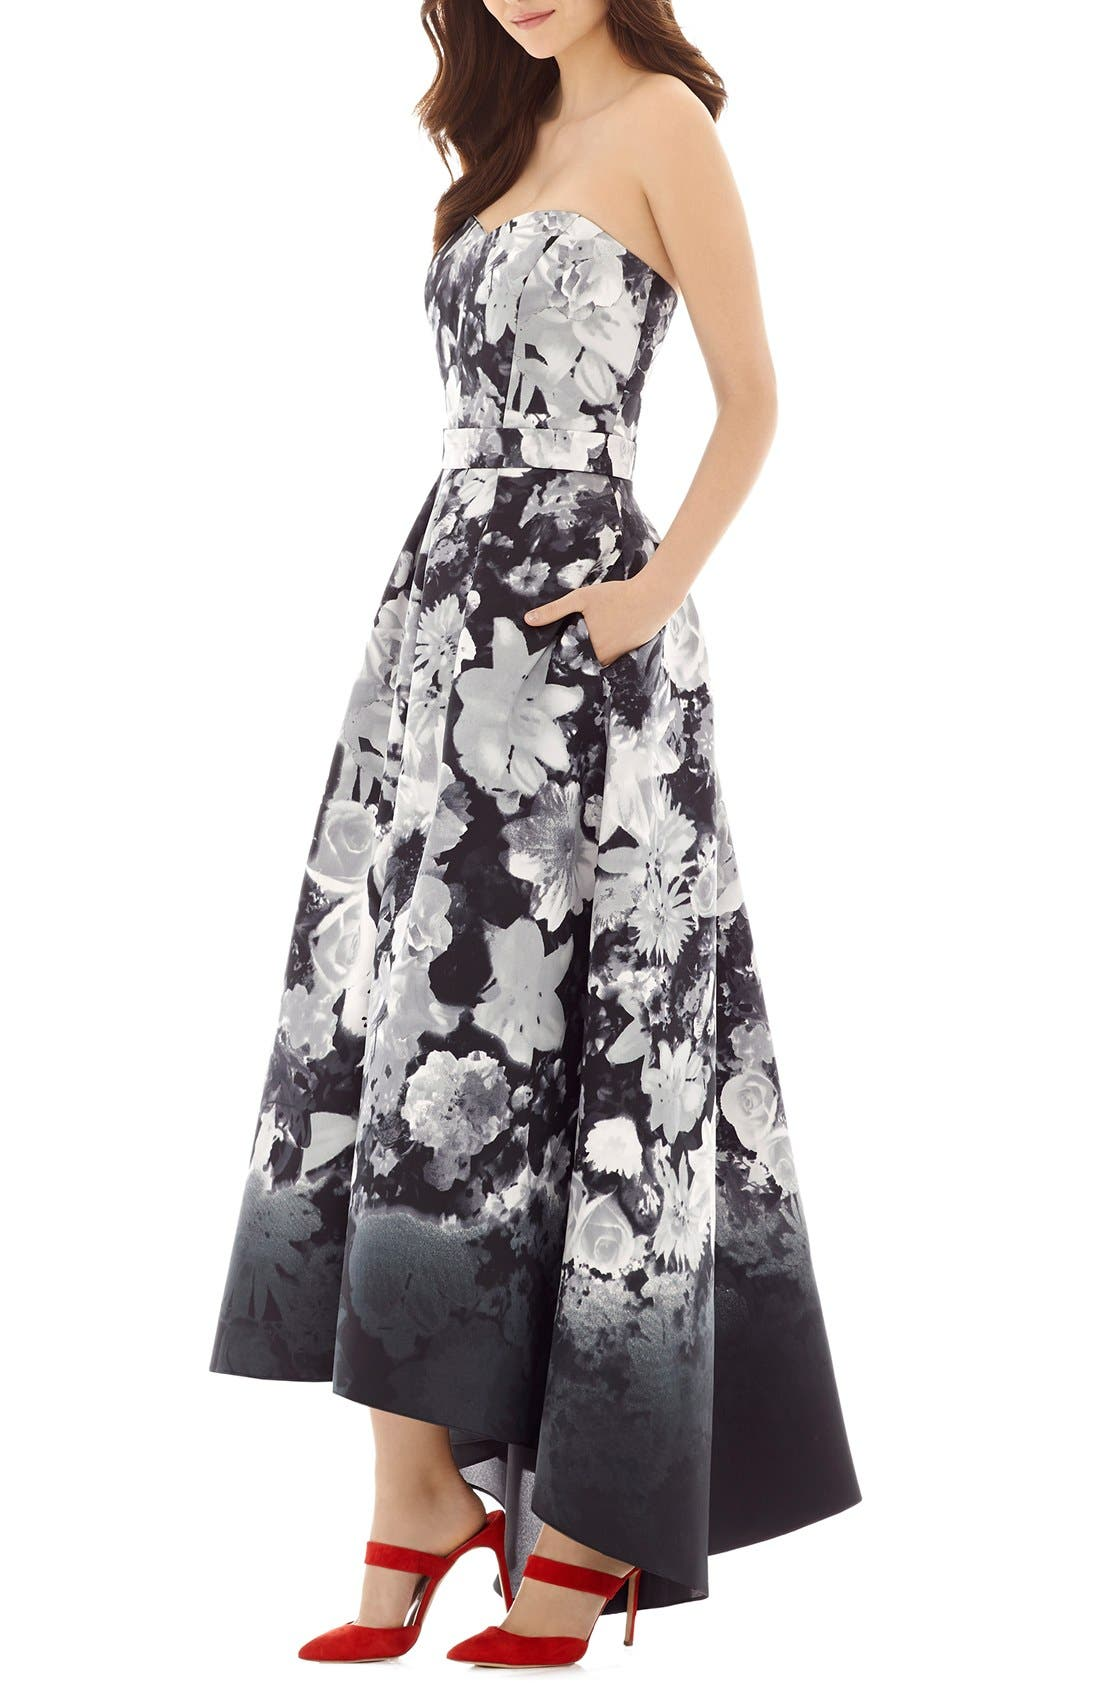 Main Image - Alfred Sung Floral Print Strapless Sateen High/Low Dress